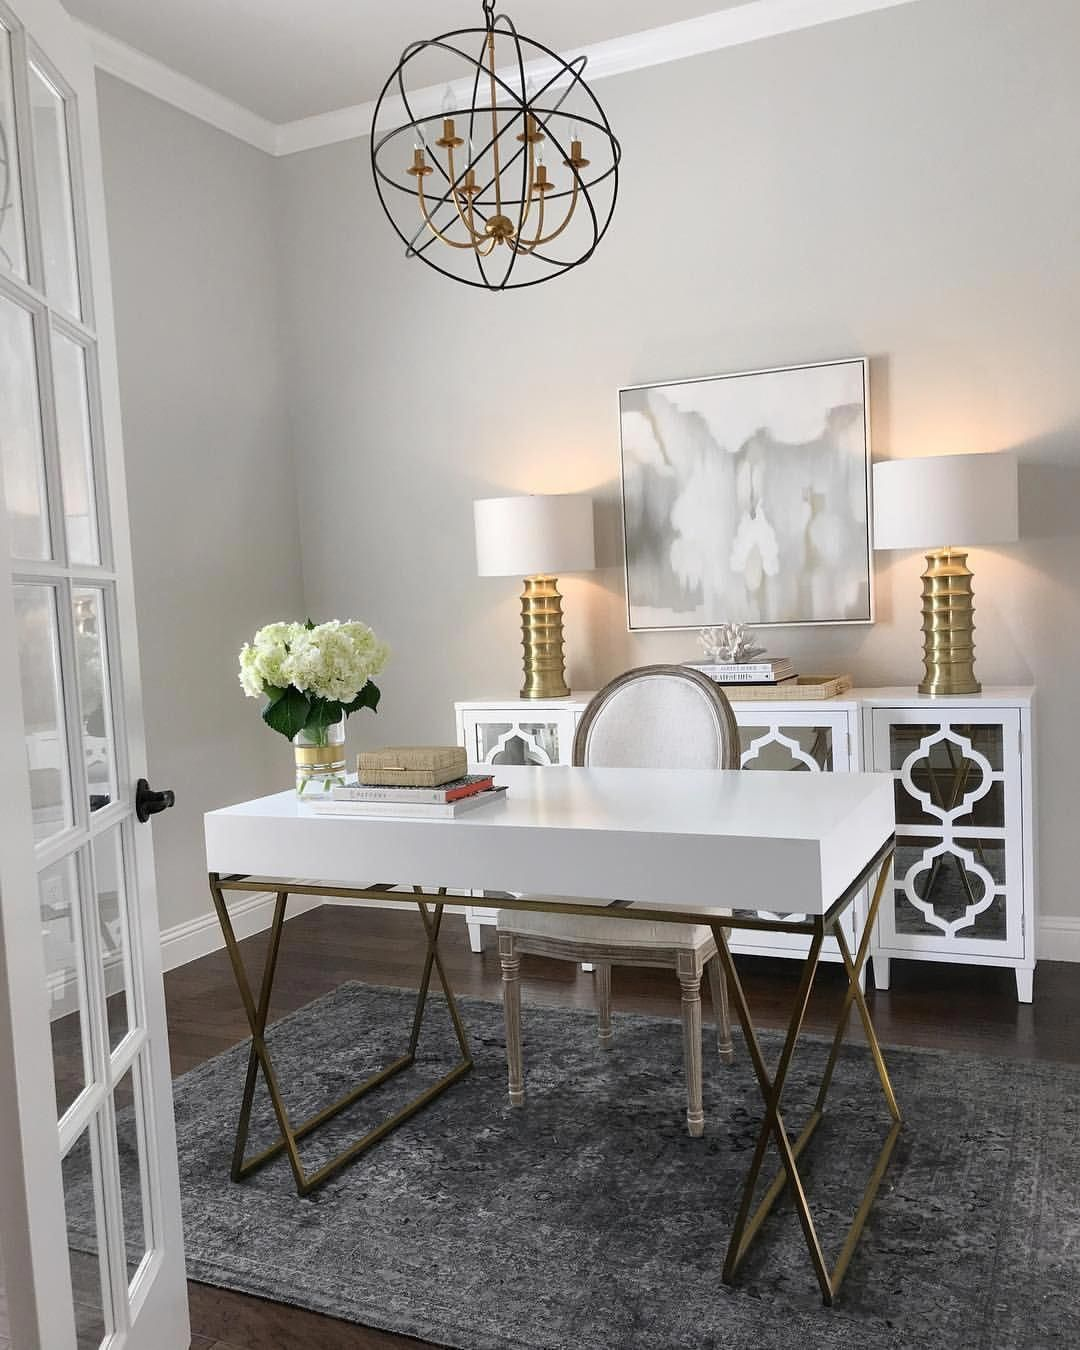 Home Office Inspiration White And Gold Desk White Mirrored Sideboard Gold Table Lamps Gray Rug Zga Home Office Decor Home Office Design Modern Home Office